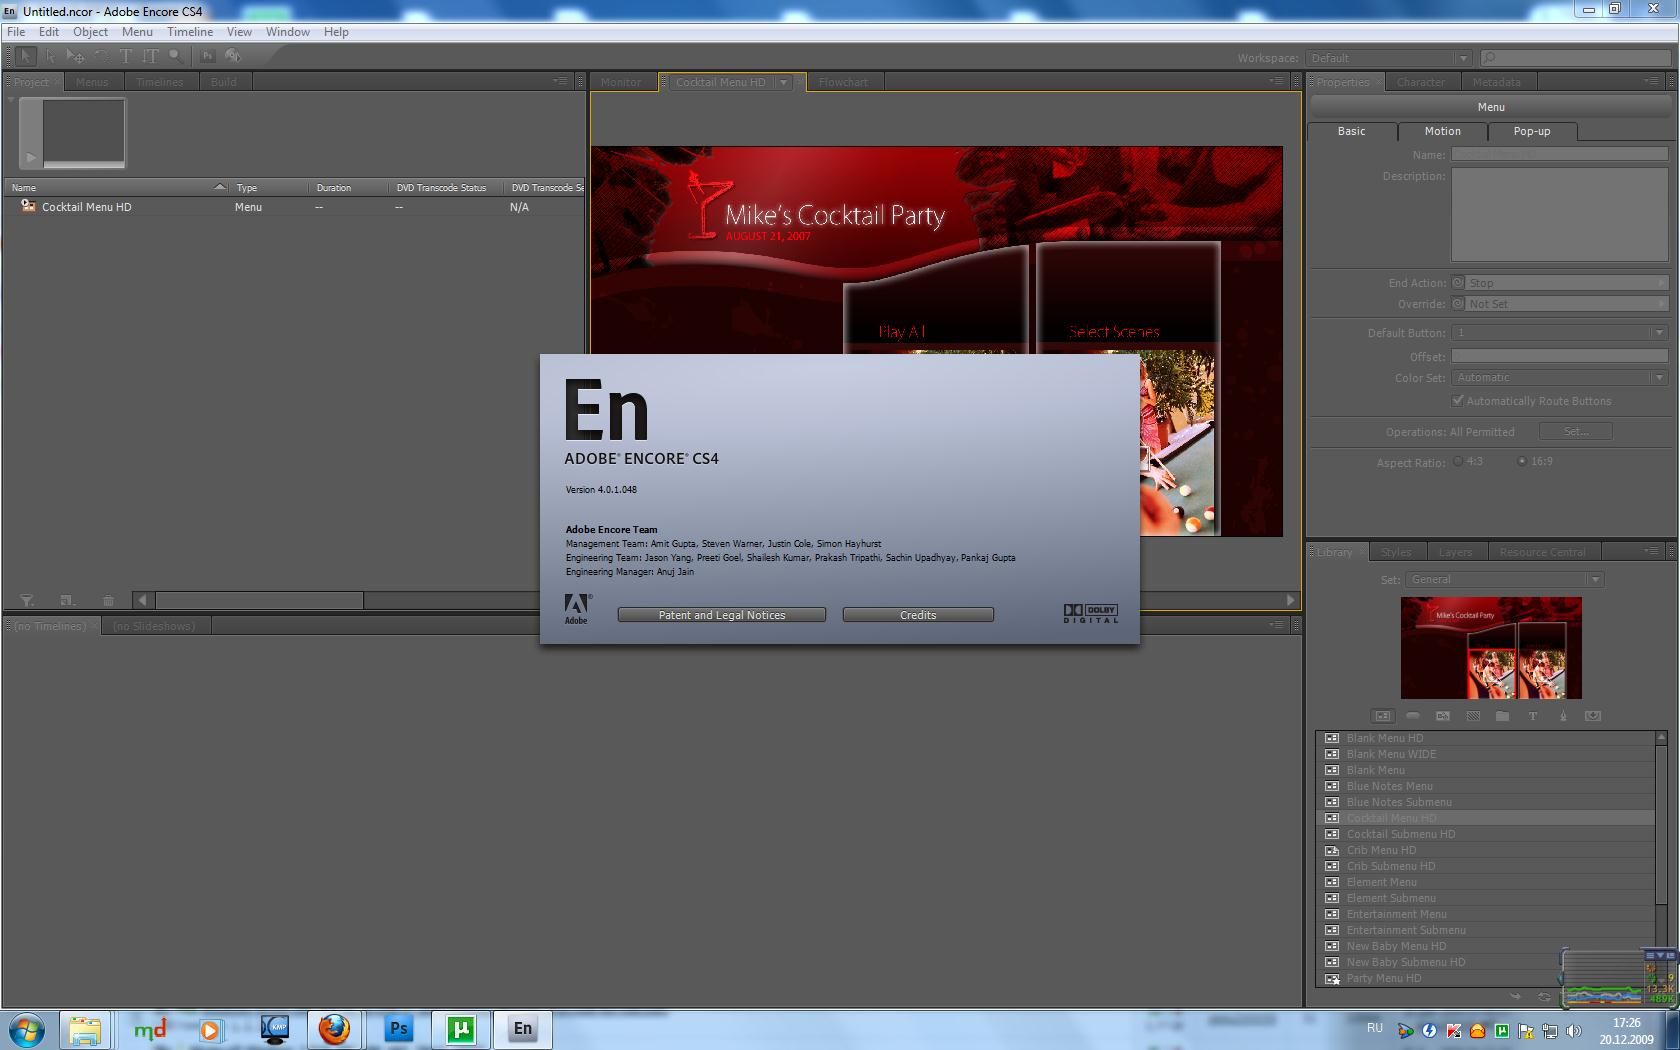 Adobe Encore CS4 Content 4.0.1.048 [Multi]